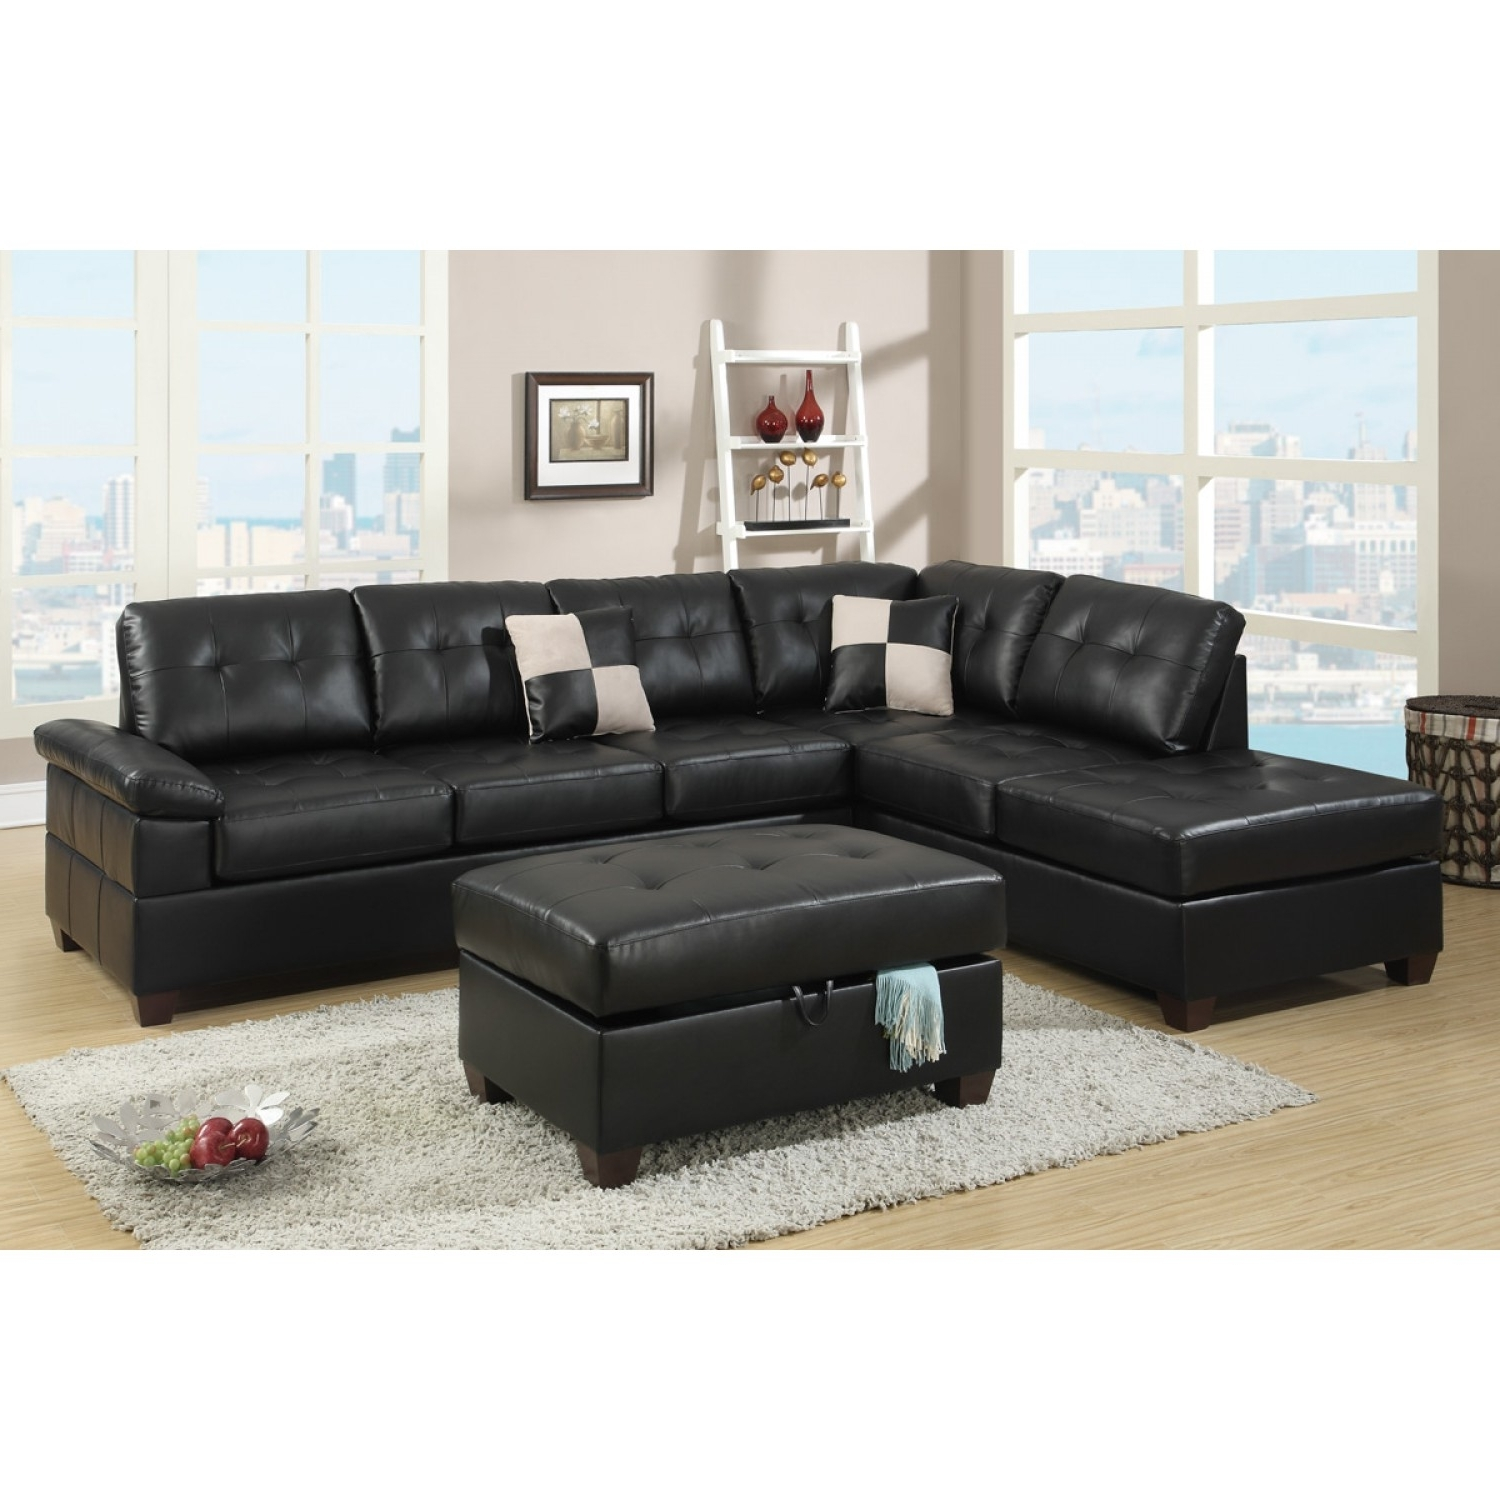 San Francisco Sectional Sofas Inside Famous Sectional Sofas San Francisco 67 With Sectional Sofas San (View 7 of 15)